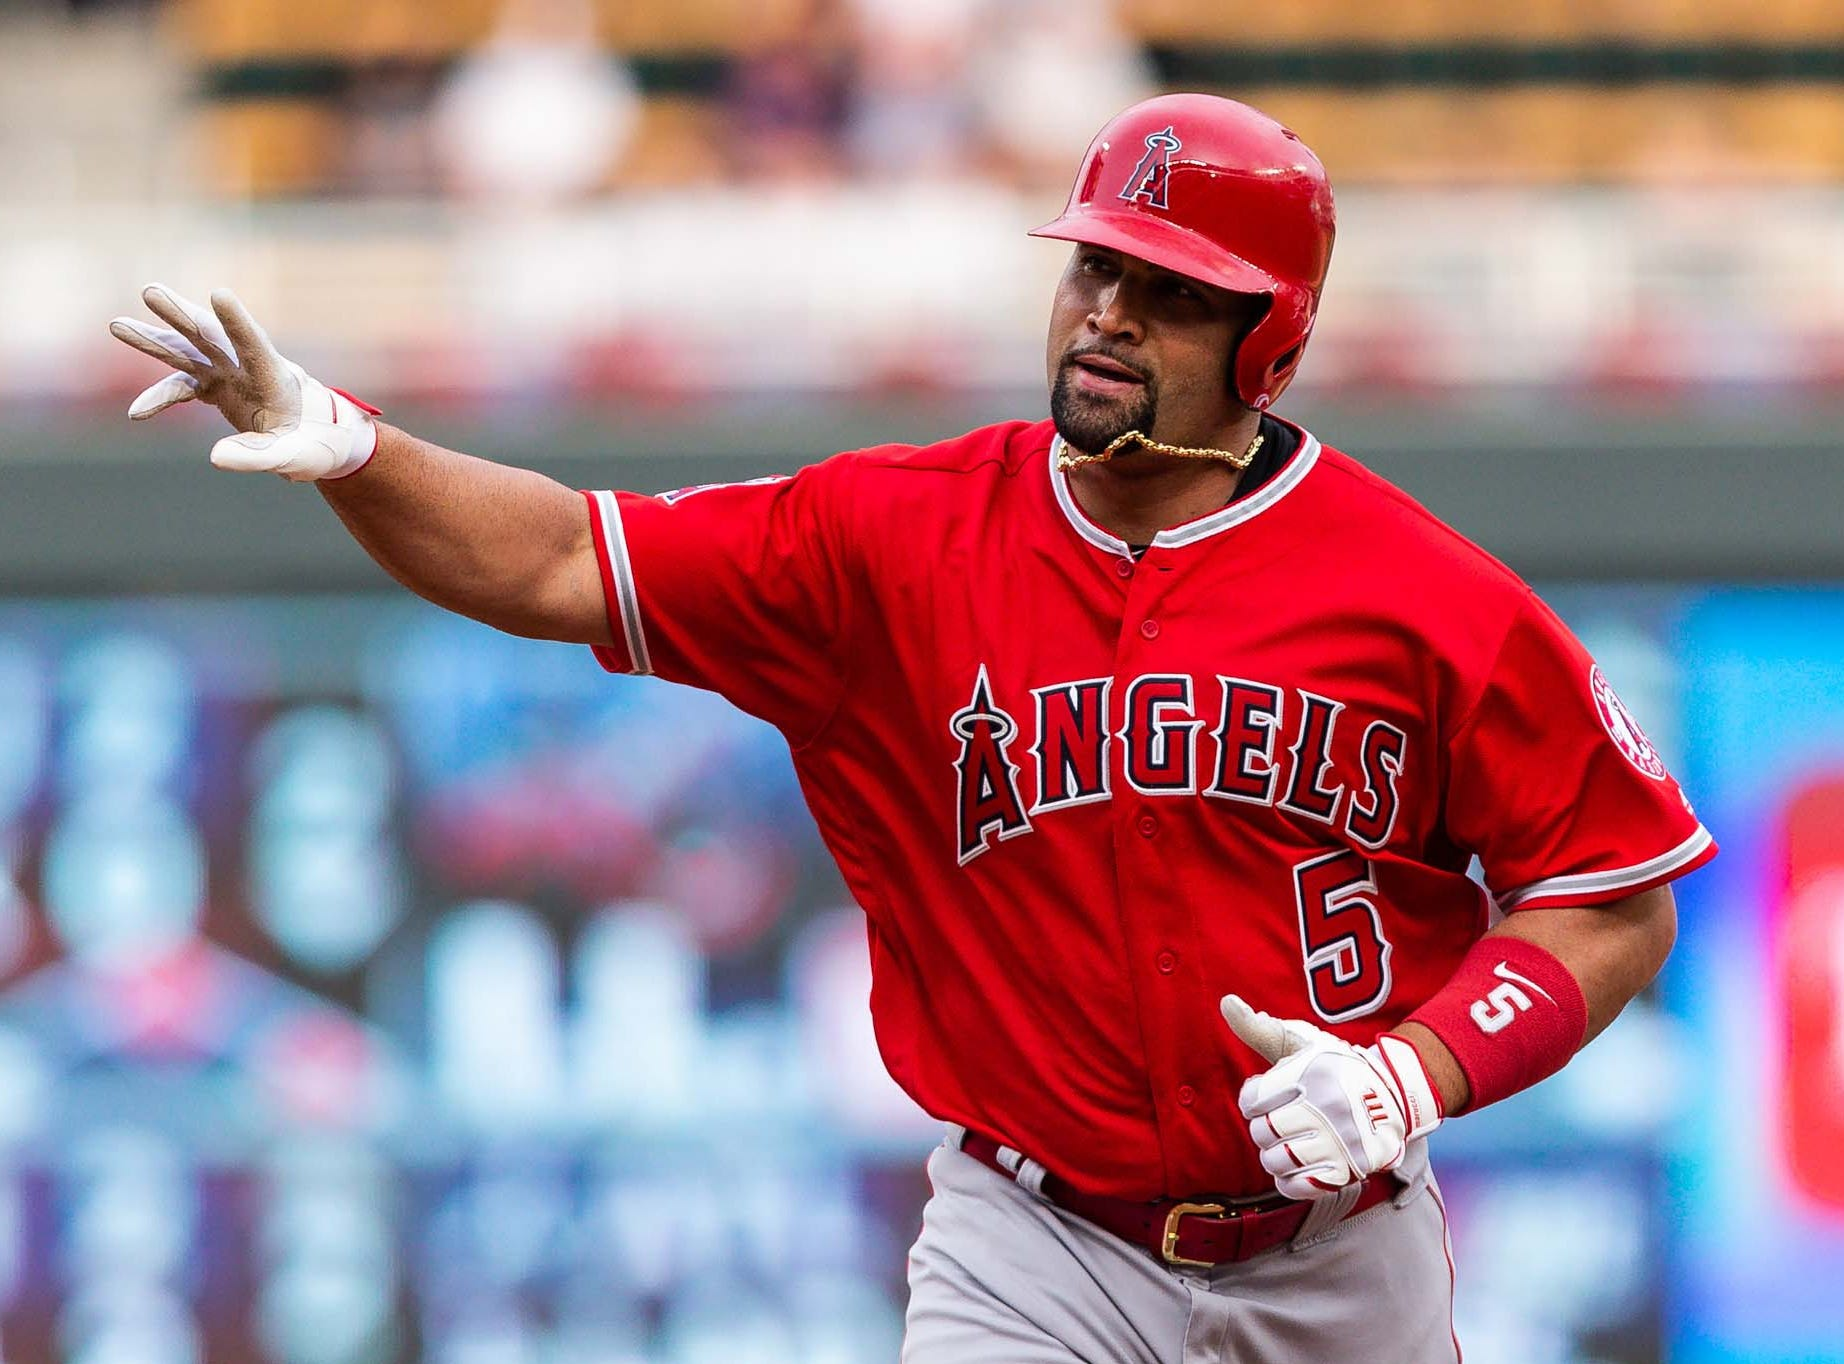 $240 million: Albert Pujols, Angels (2012-2021)